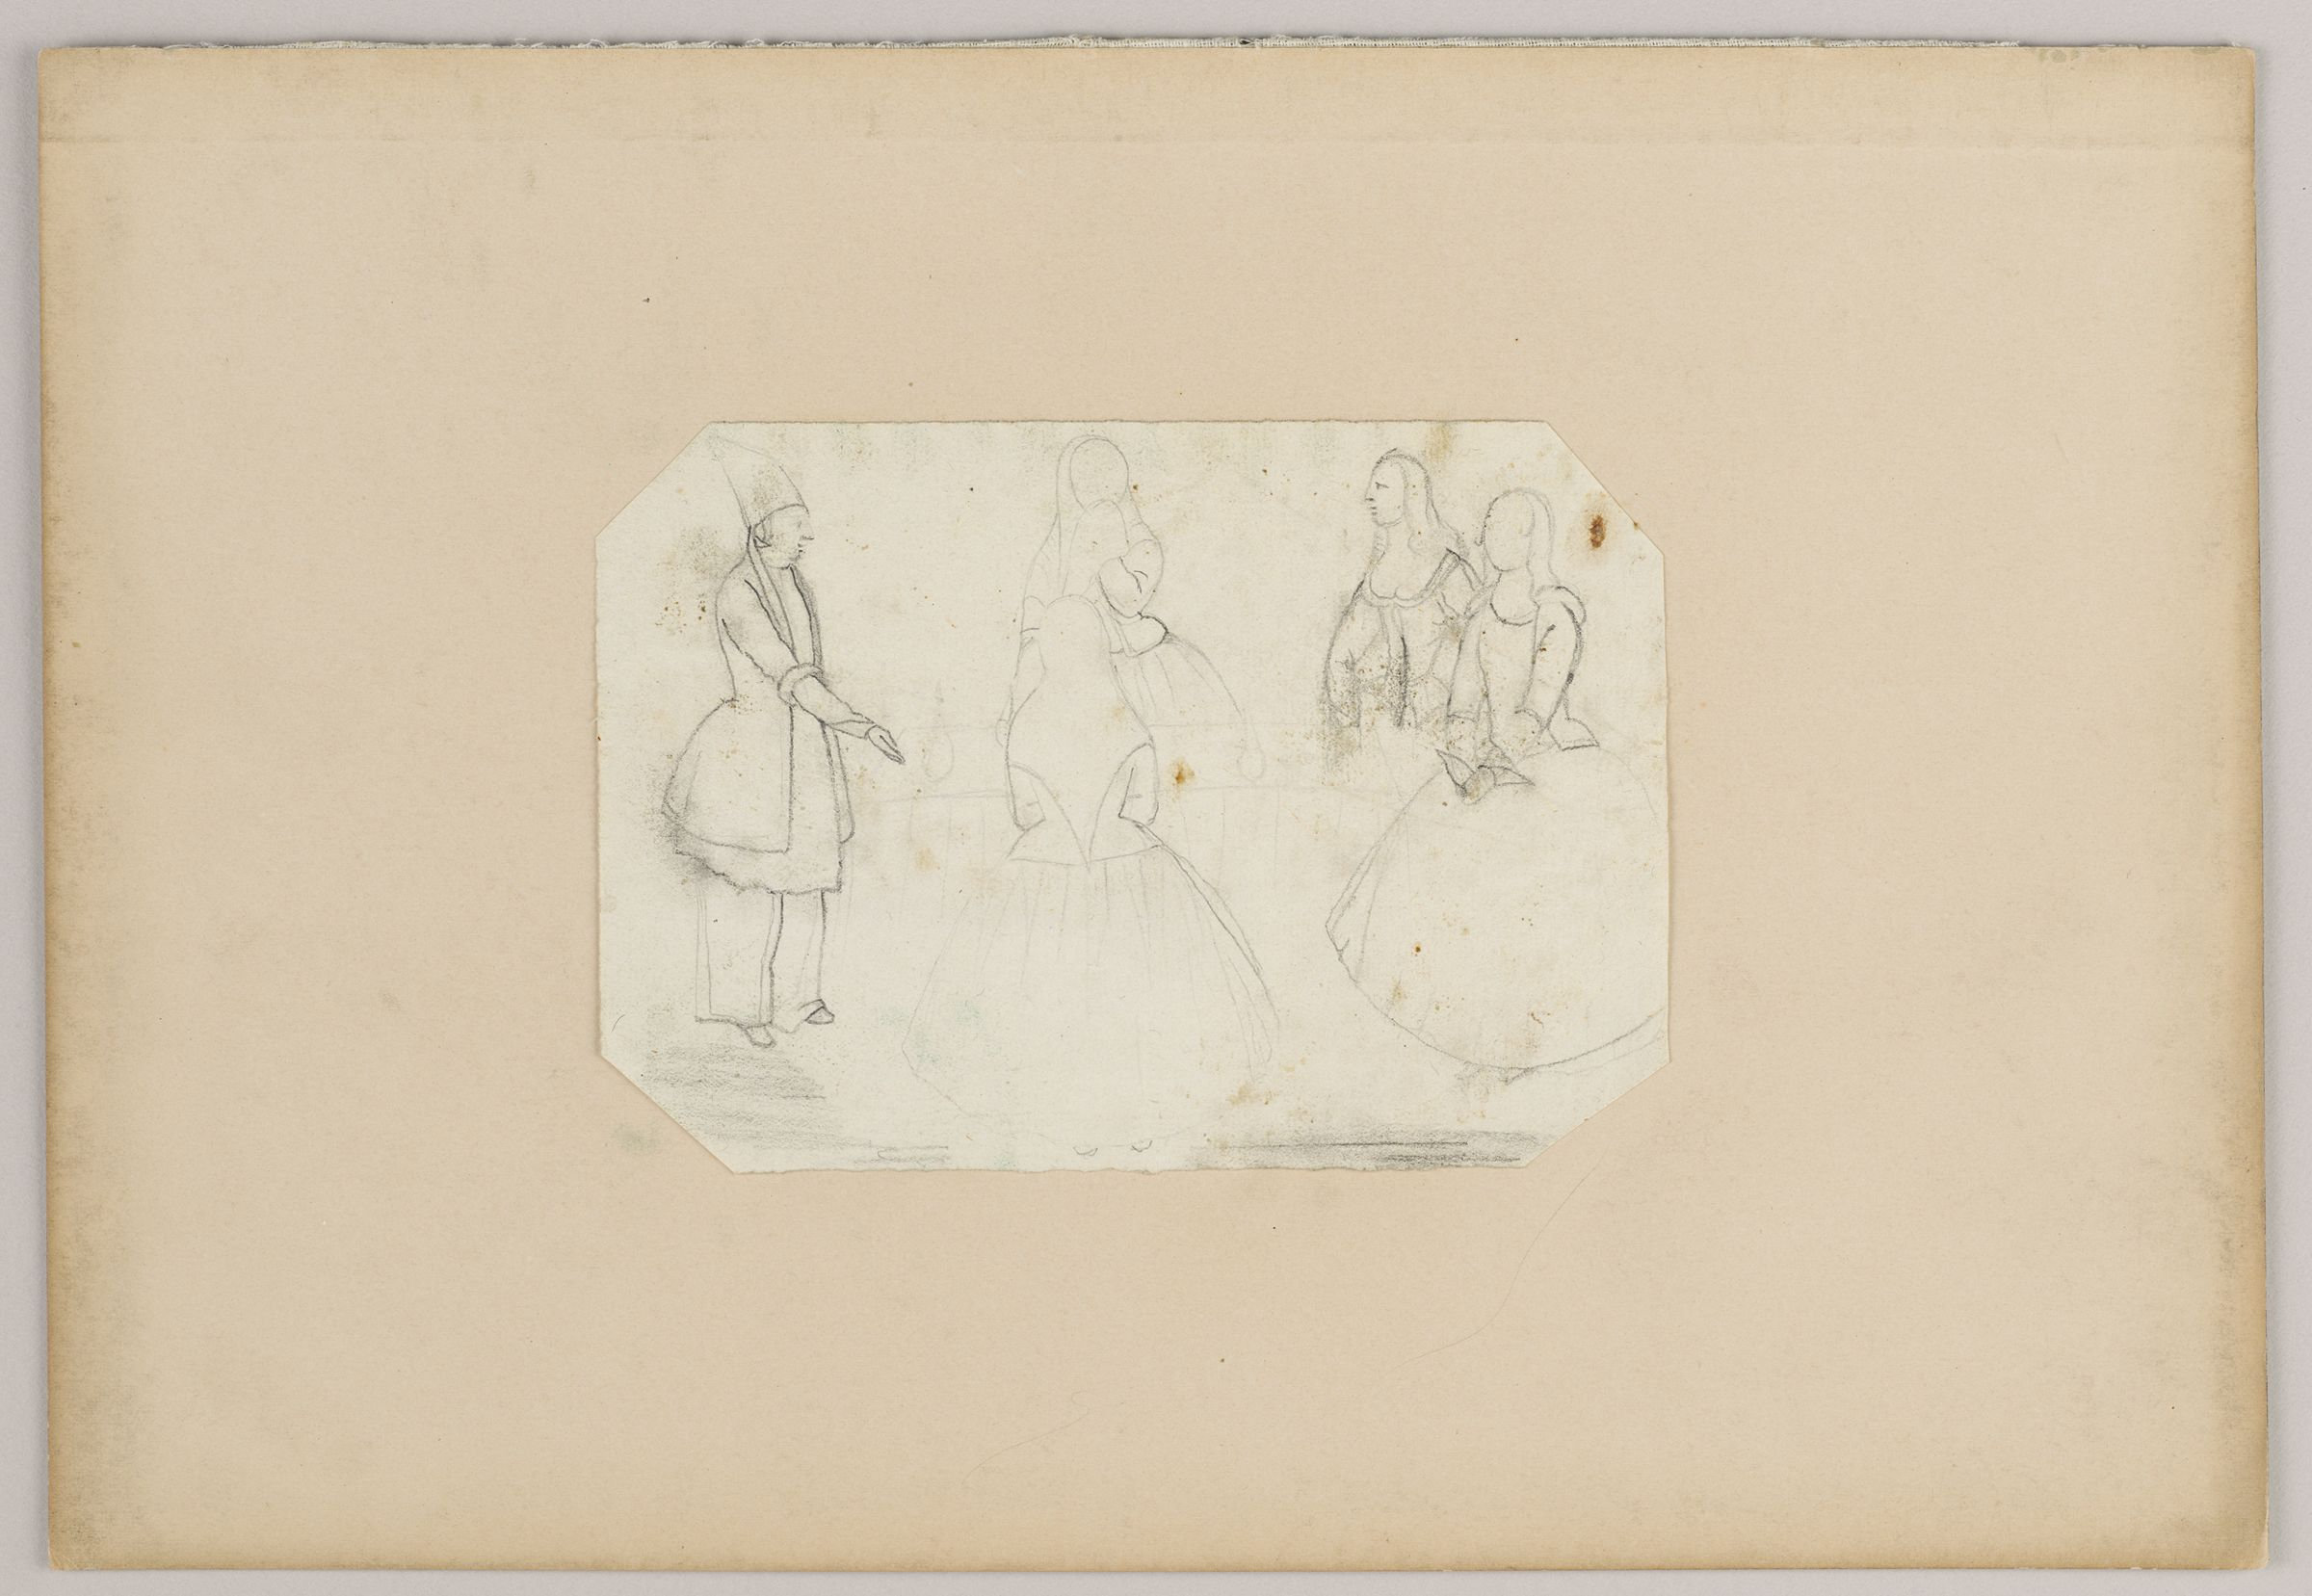 Folio 50 From An Album Of Drawings And Paintings: Sketch Of Qajar Man And Four Women (Recto); Drawing Set Within A Colored Paper Border: Two Women And A Small Child (Verso)